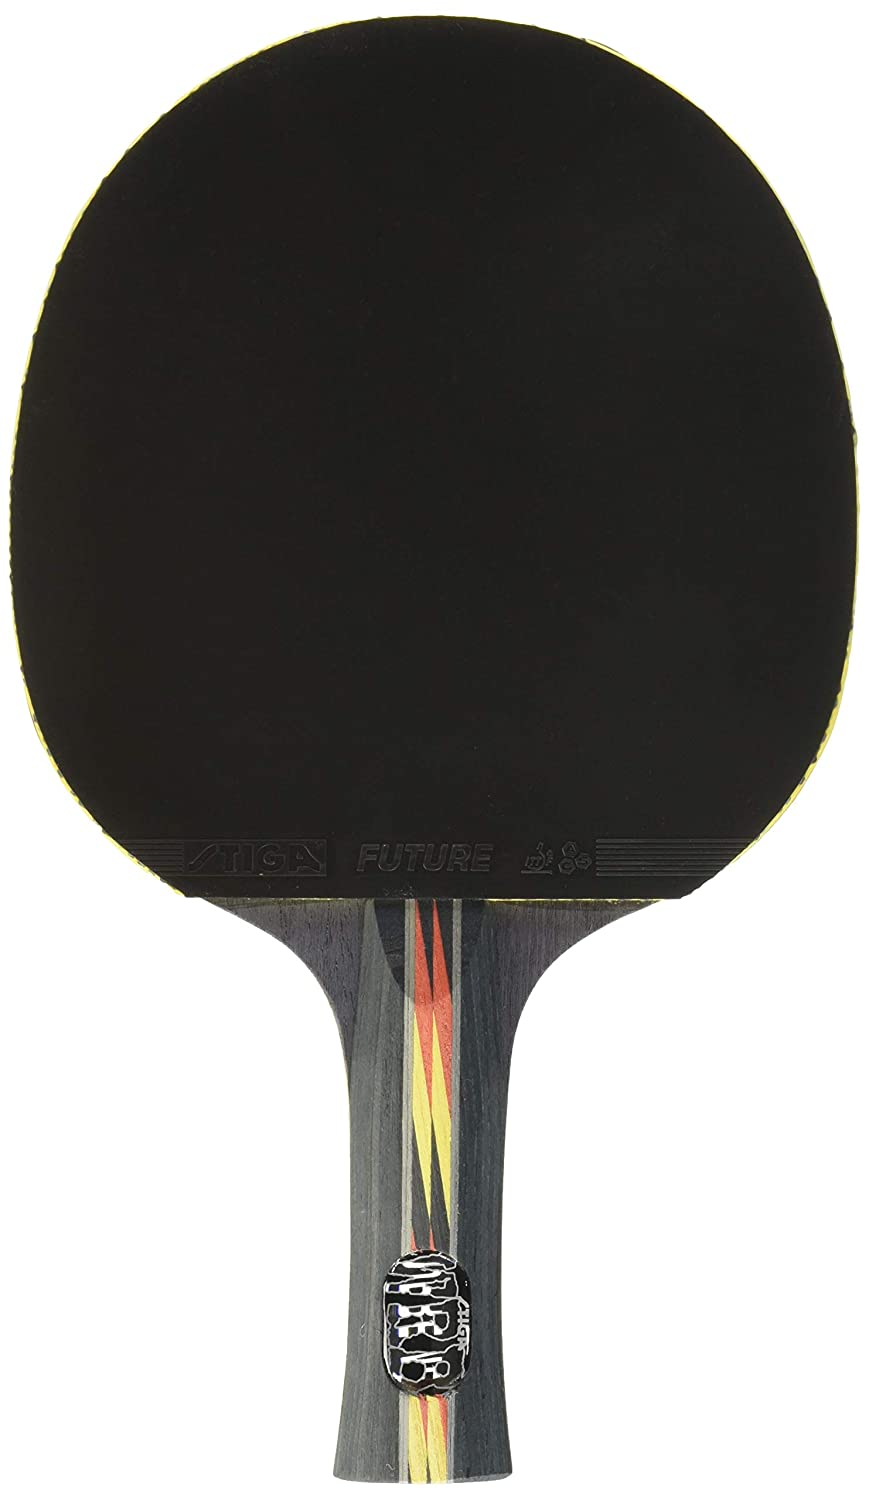 STIGA Supreme Performance-Level Table Tennis Racket made with ITTF Approved Rubber for Tournament Play – Features STIGA ACS for Control and Speed